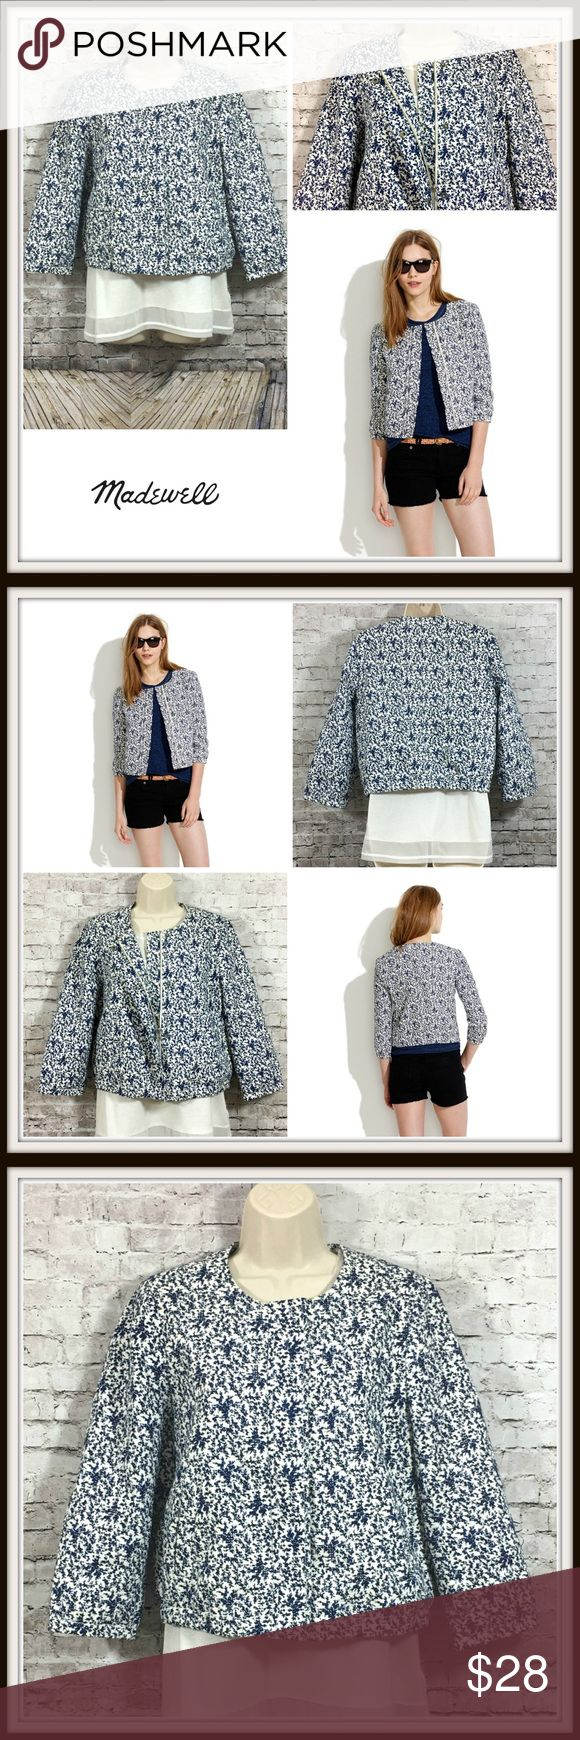 """🍒 Madewell Blue Bird Floral Zip-Up Jacket 🍒 Madewell Blue Bird Jacket 